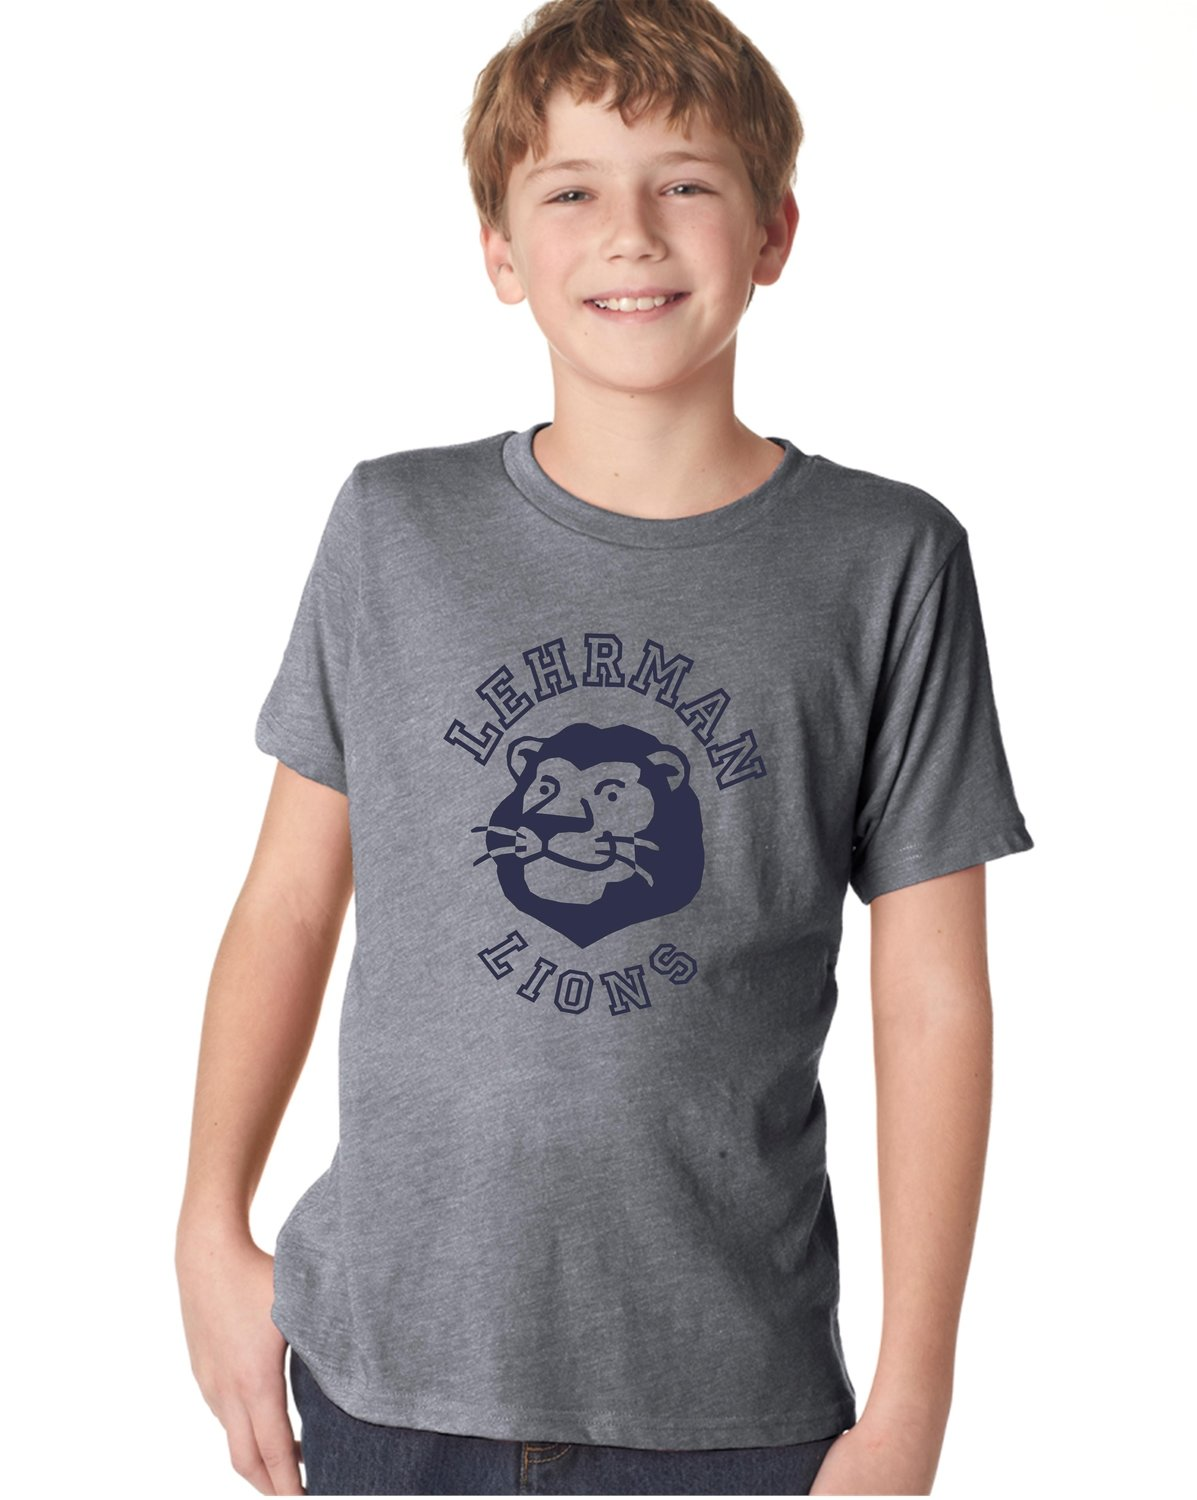 NEW! Lion Logo Soft T-shirt Grey with Navy Unisex YOUTH